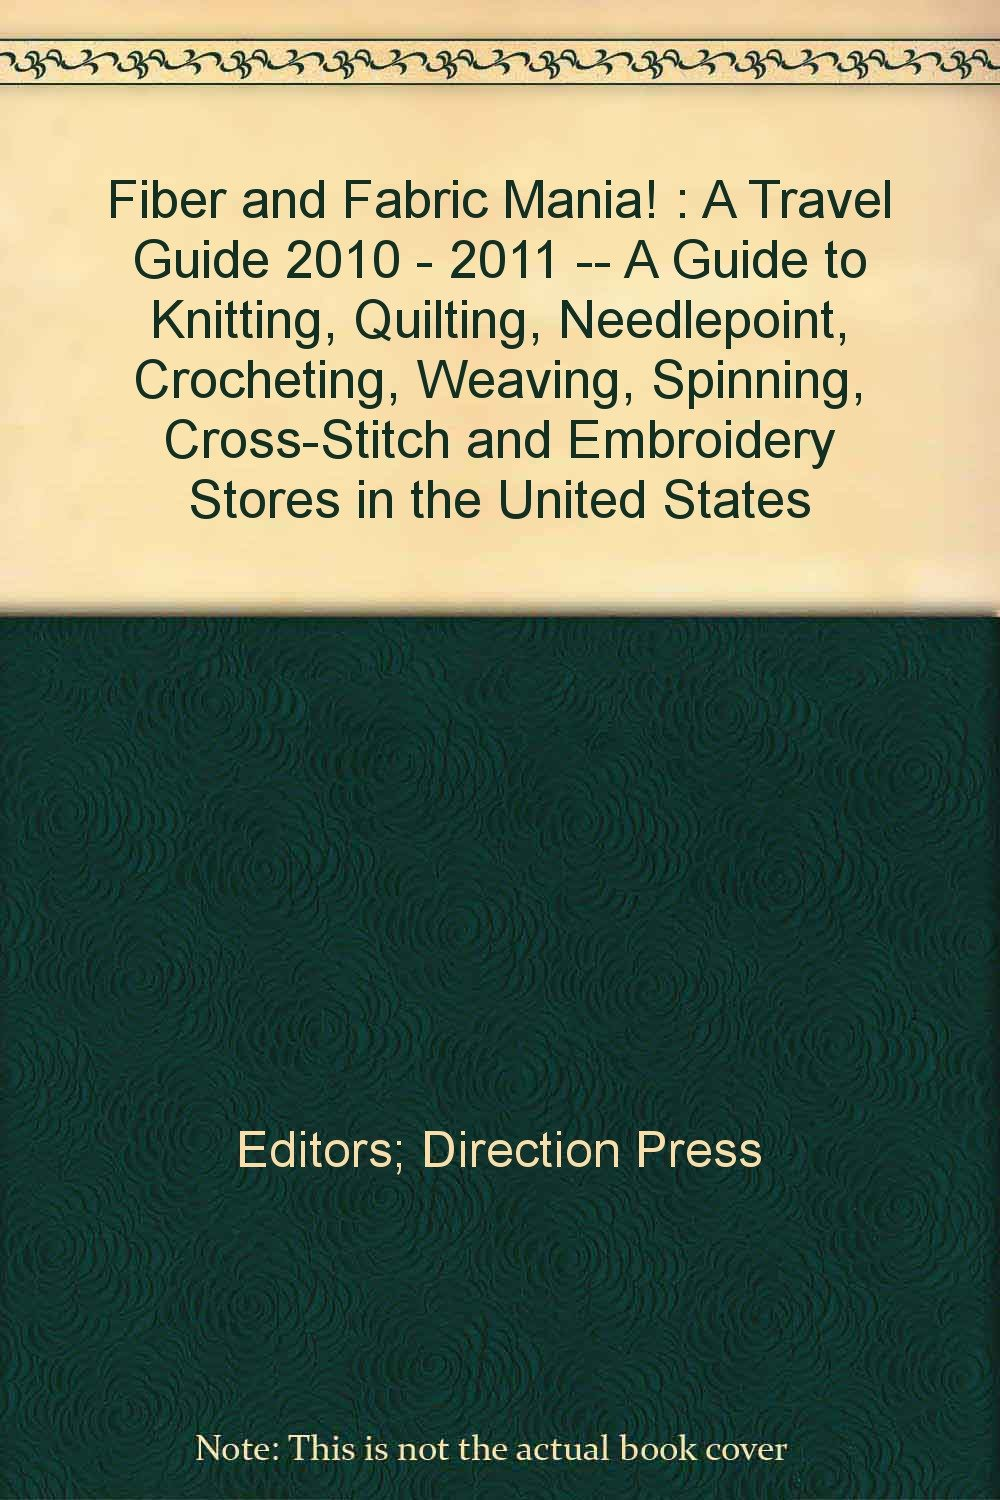 Fiber and Fabric Mania! : A Travel Guide 2010 - 2011 -- A Guide to Knitting, Quilting, Needlepoint, Crocheting, Weaving, Spinning, Cross-Stitch and Embroidery Stores in the United States